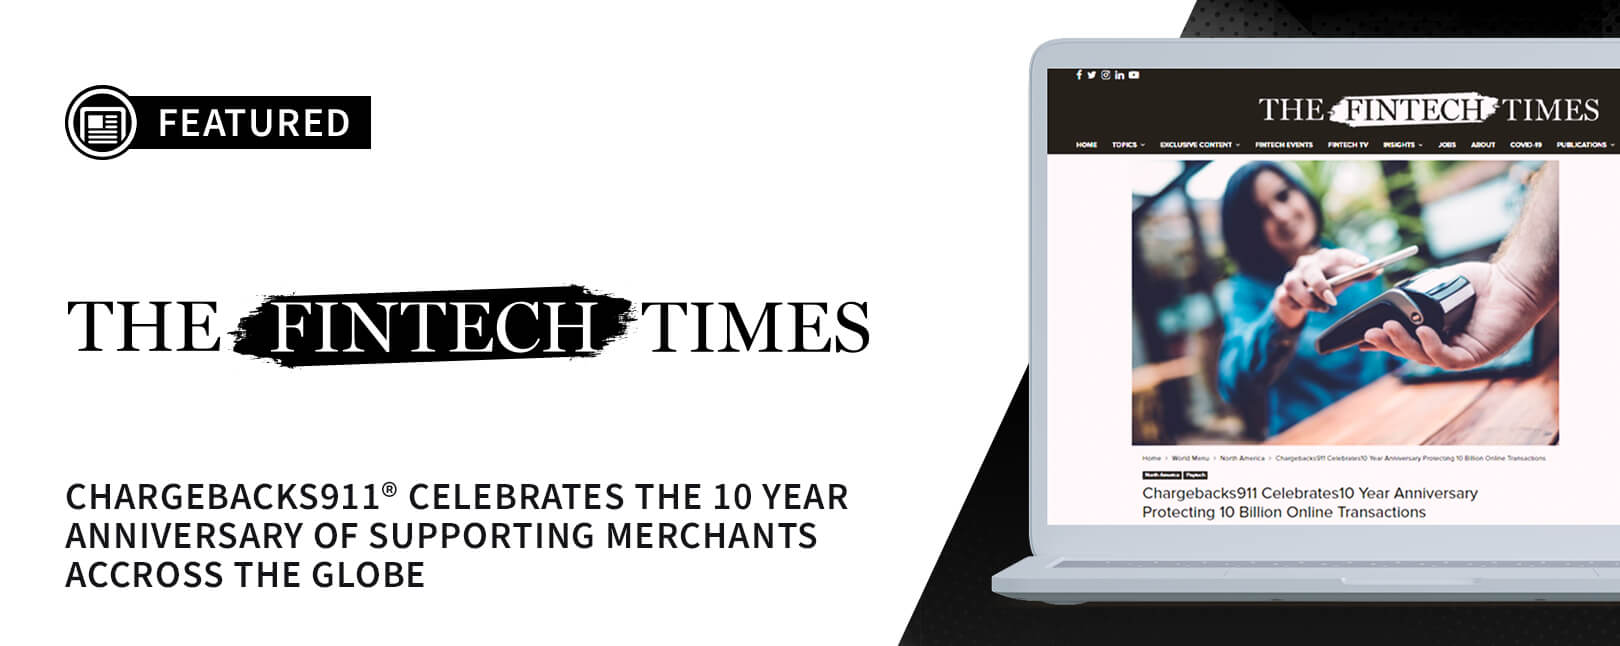 Fintech Times Recognizes Chargebacks911® 10th Anniversary